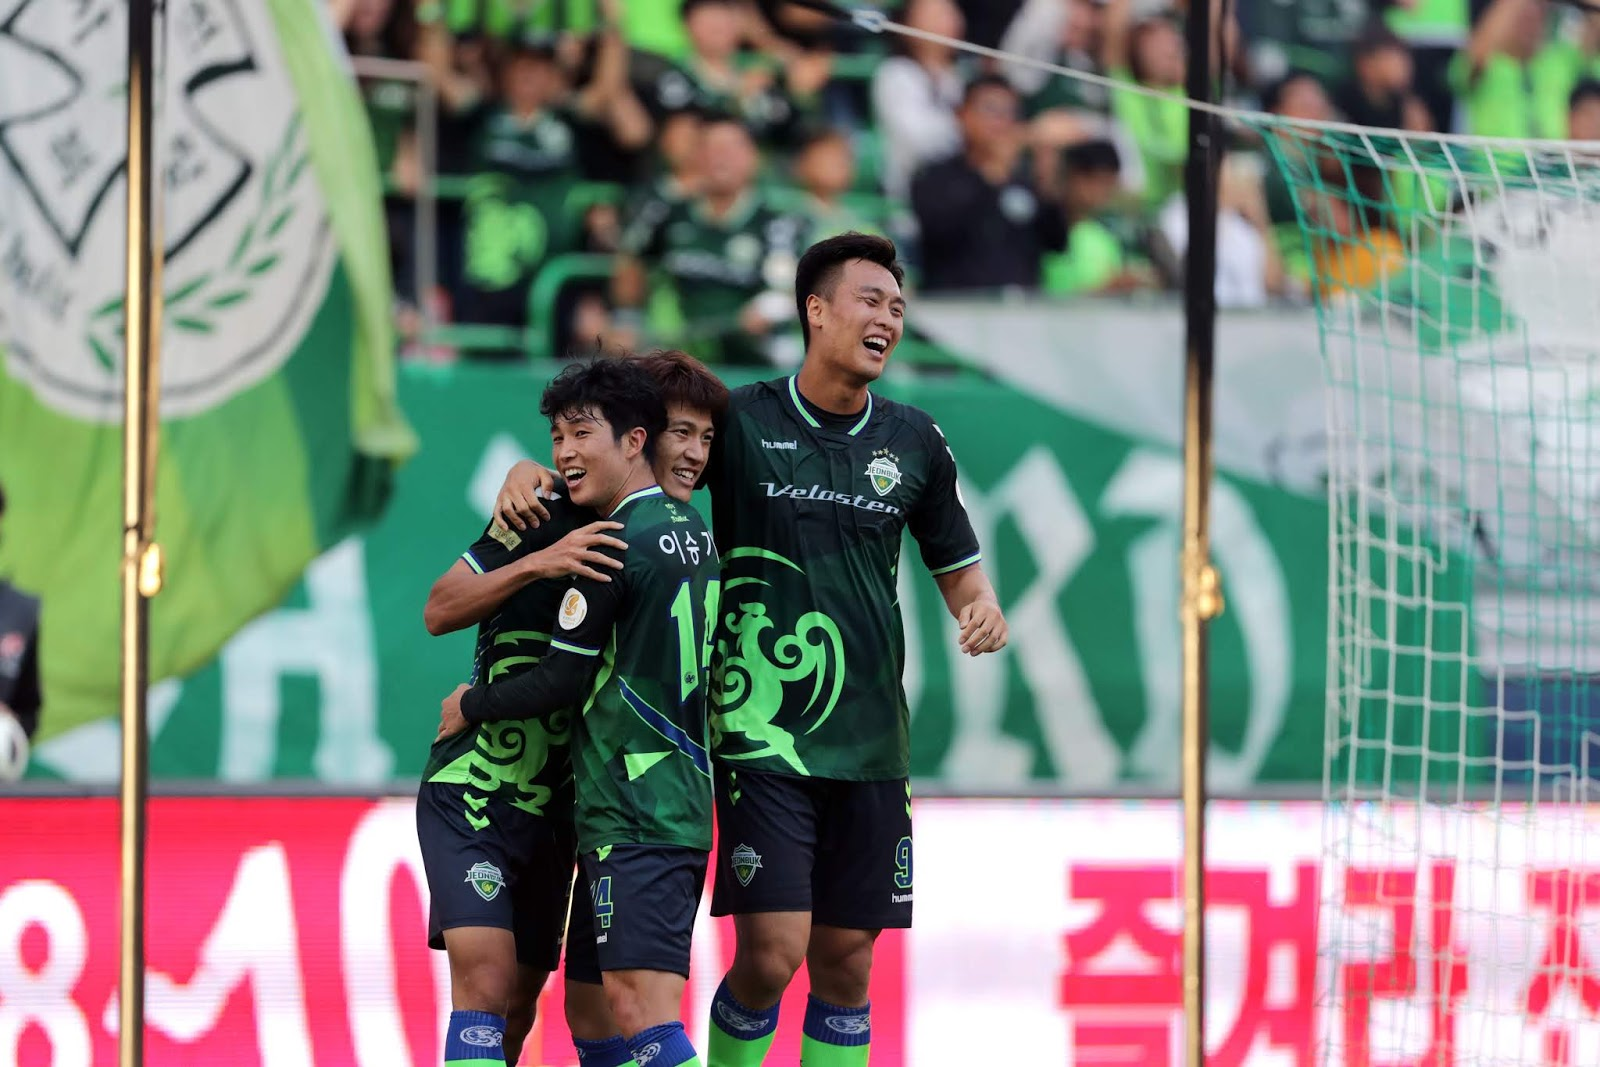 K League 1 Preview: Jeonbuk Hyundai Motors vs Gangwon FC